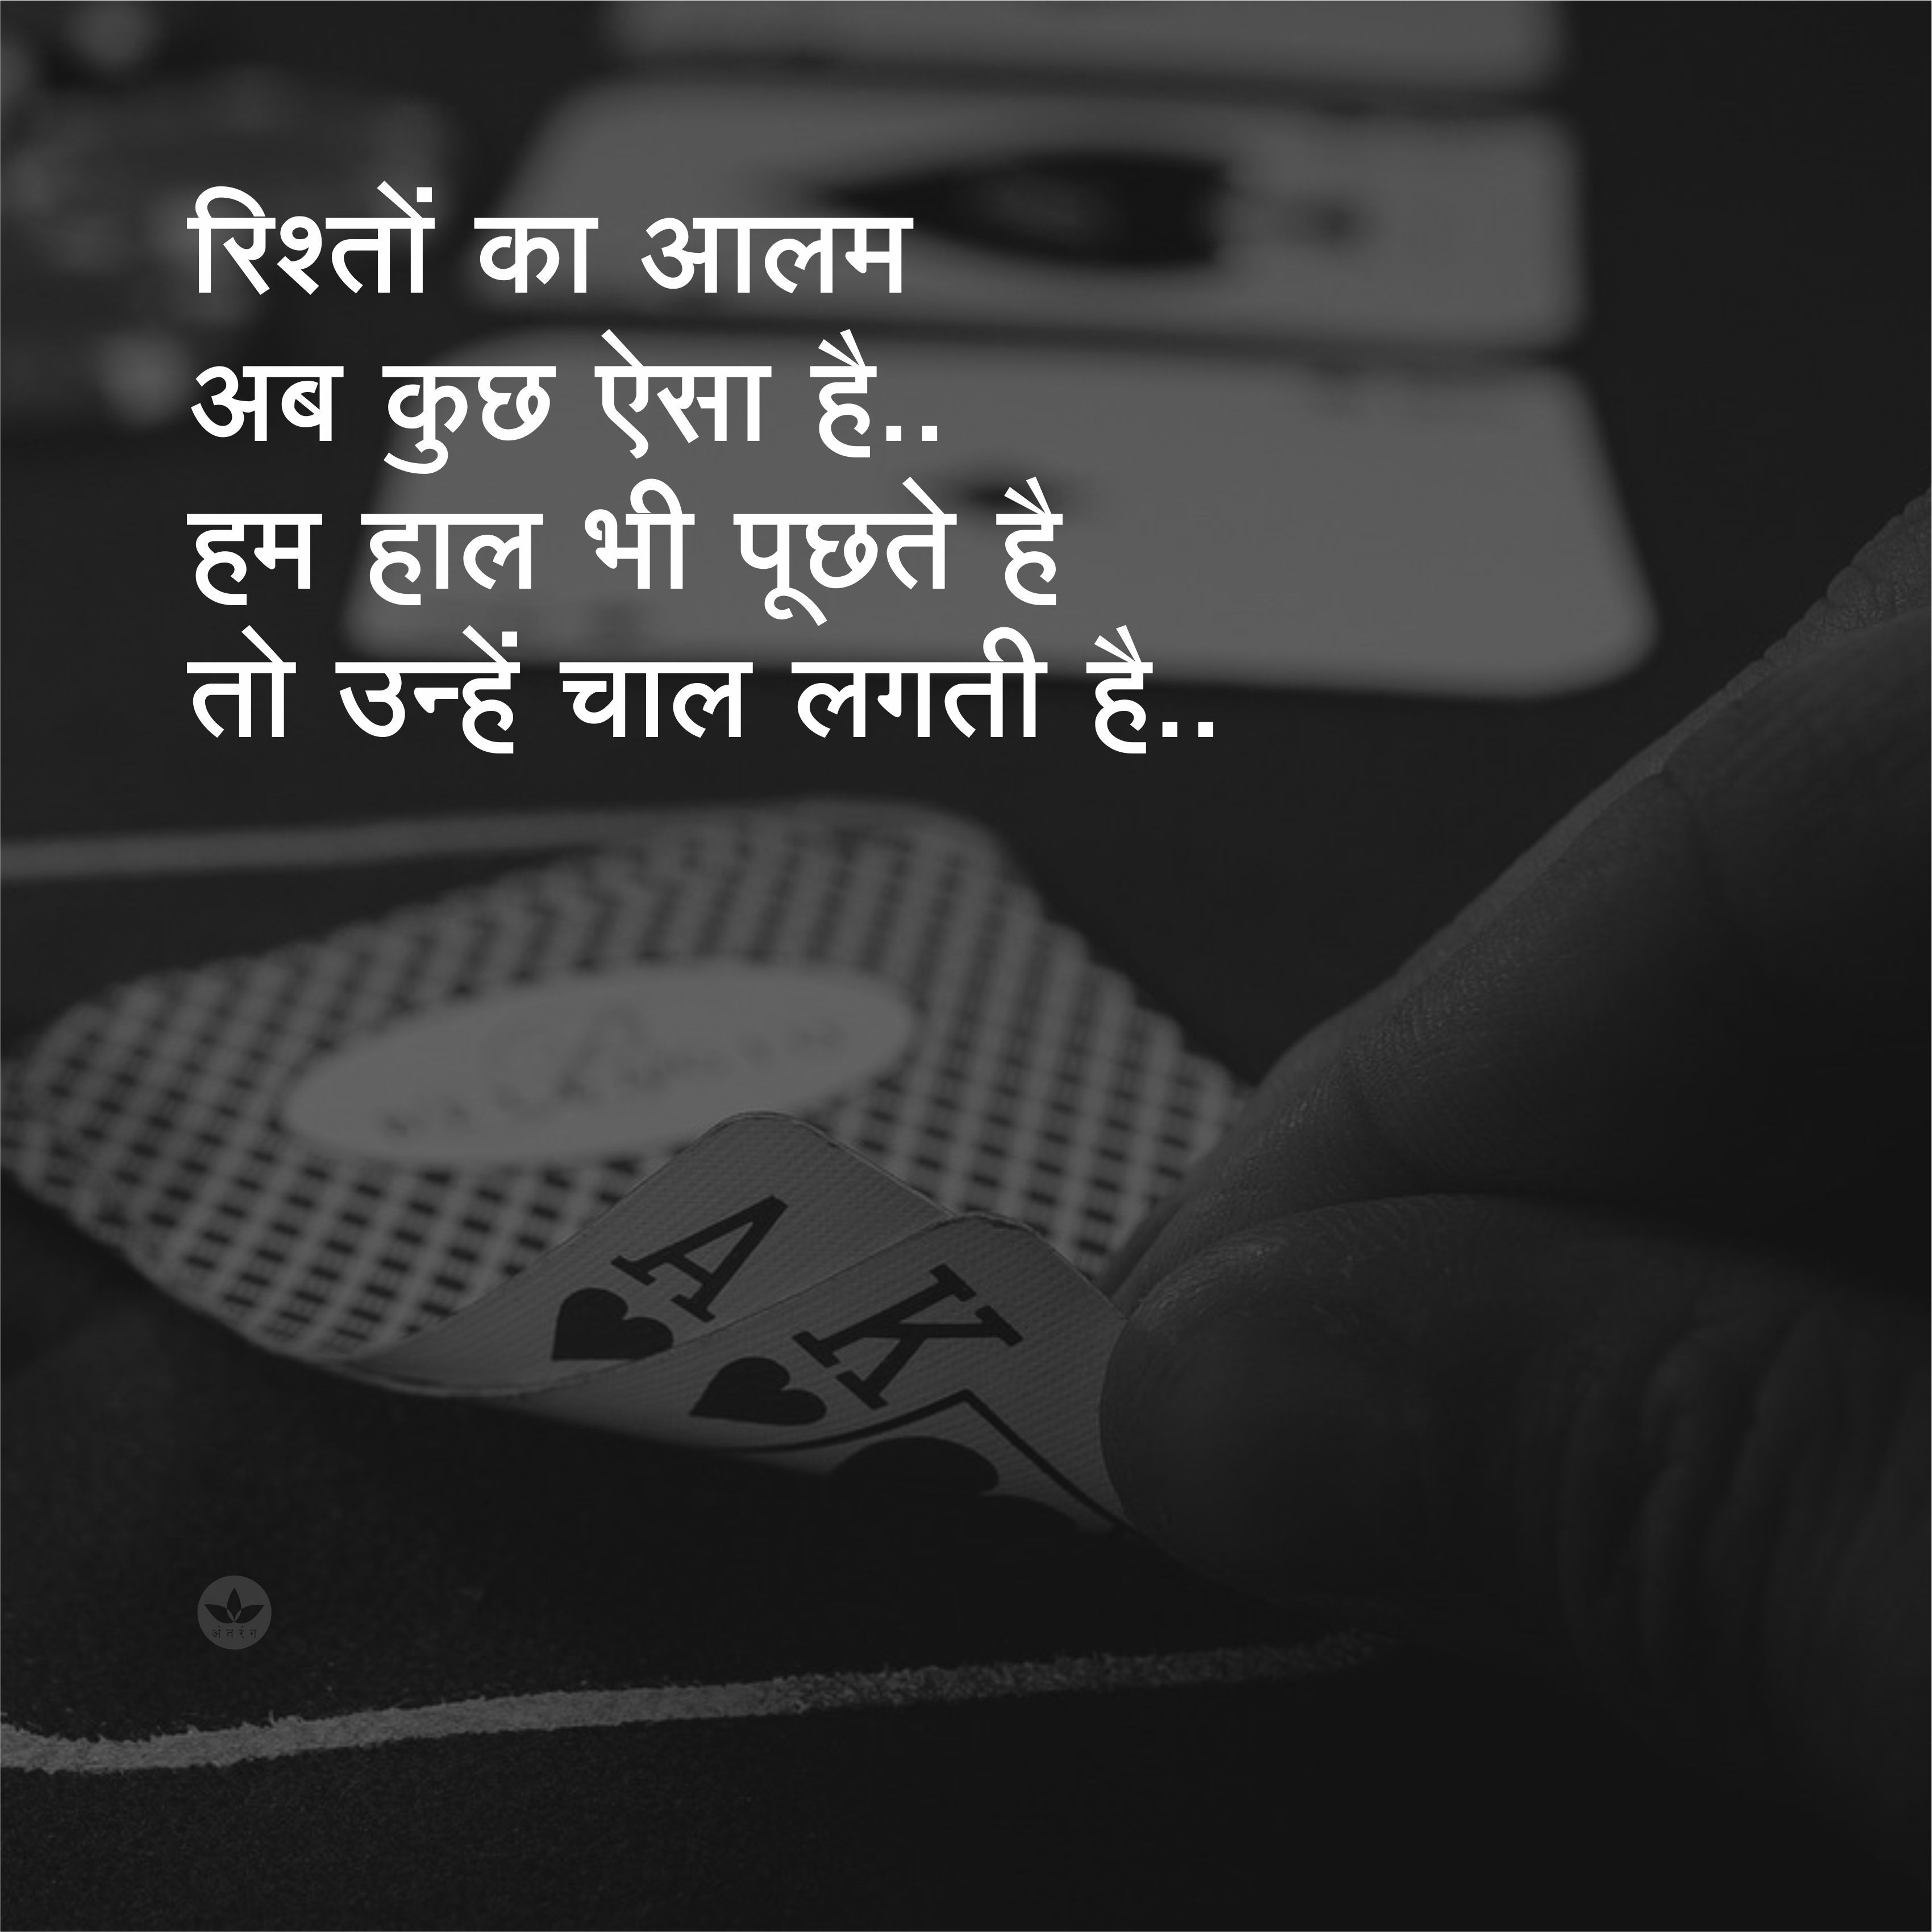 Funny life quotes best dating in hindi 2019 about ❤️ lotussutra.net